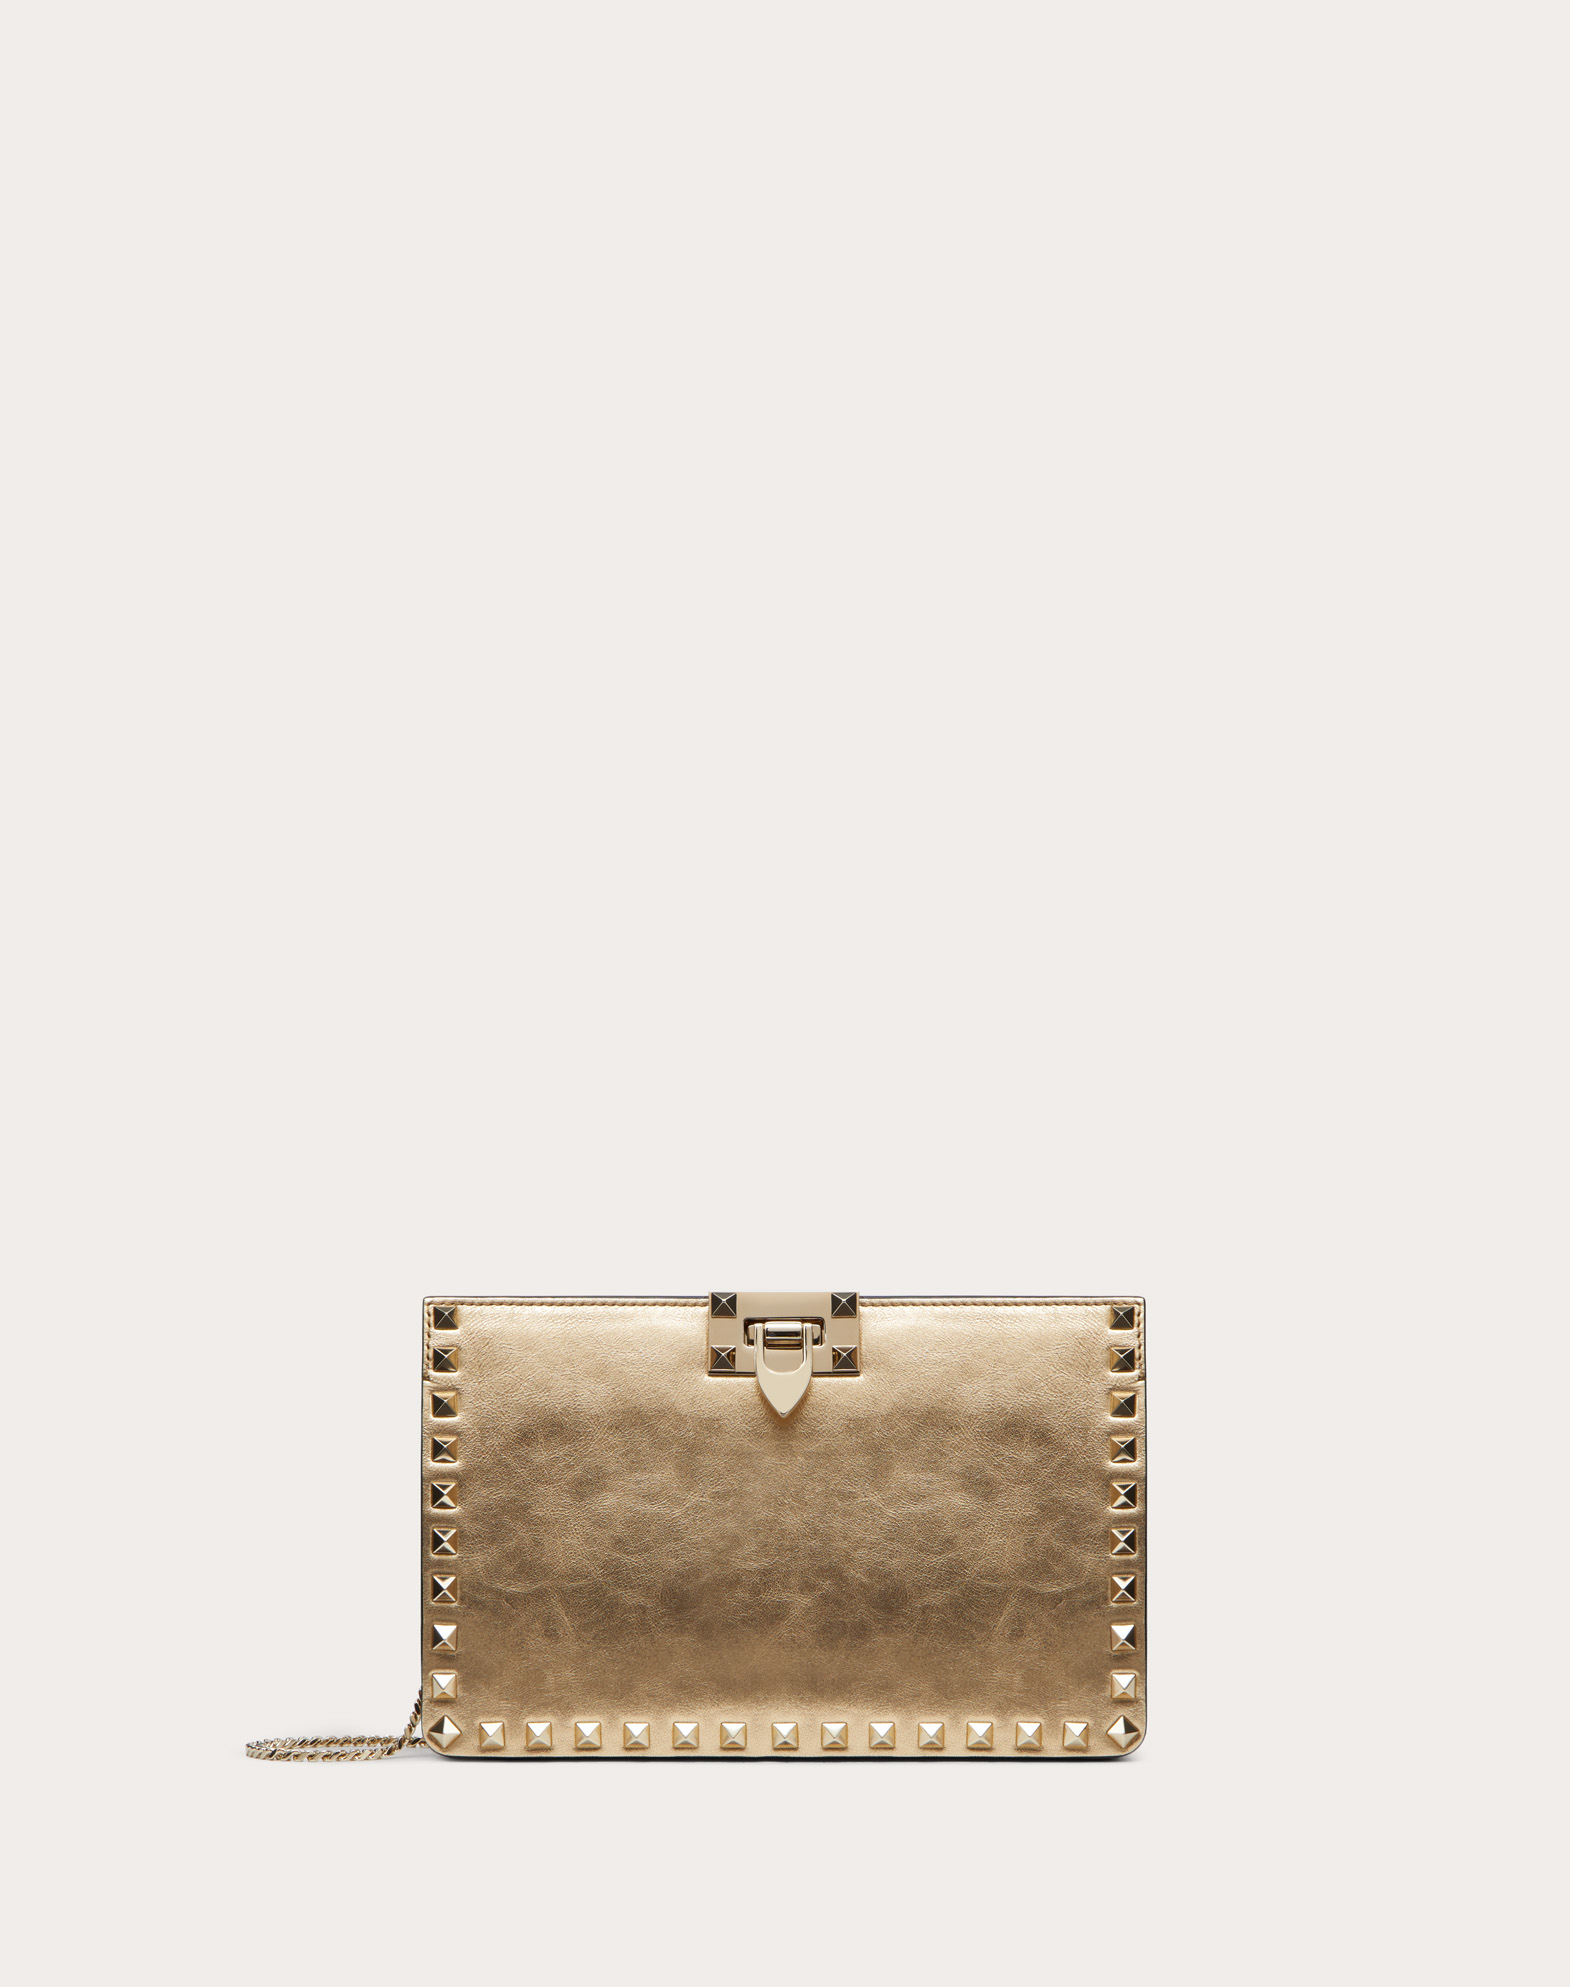 Rockstud Clutch in Metallic Craquelure-Effect Calfskin